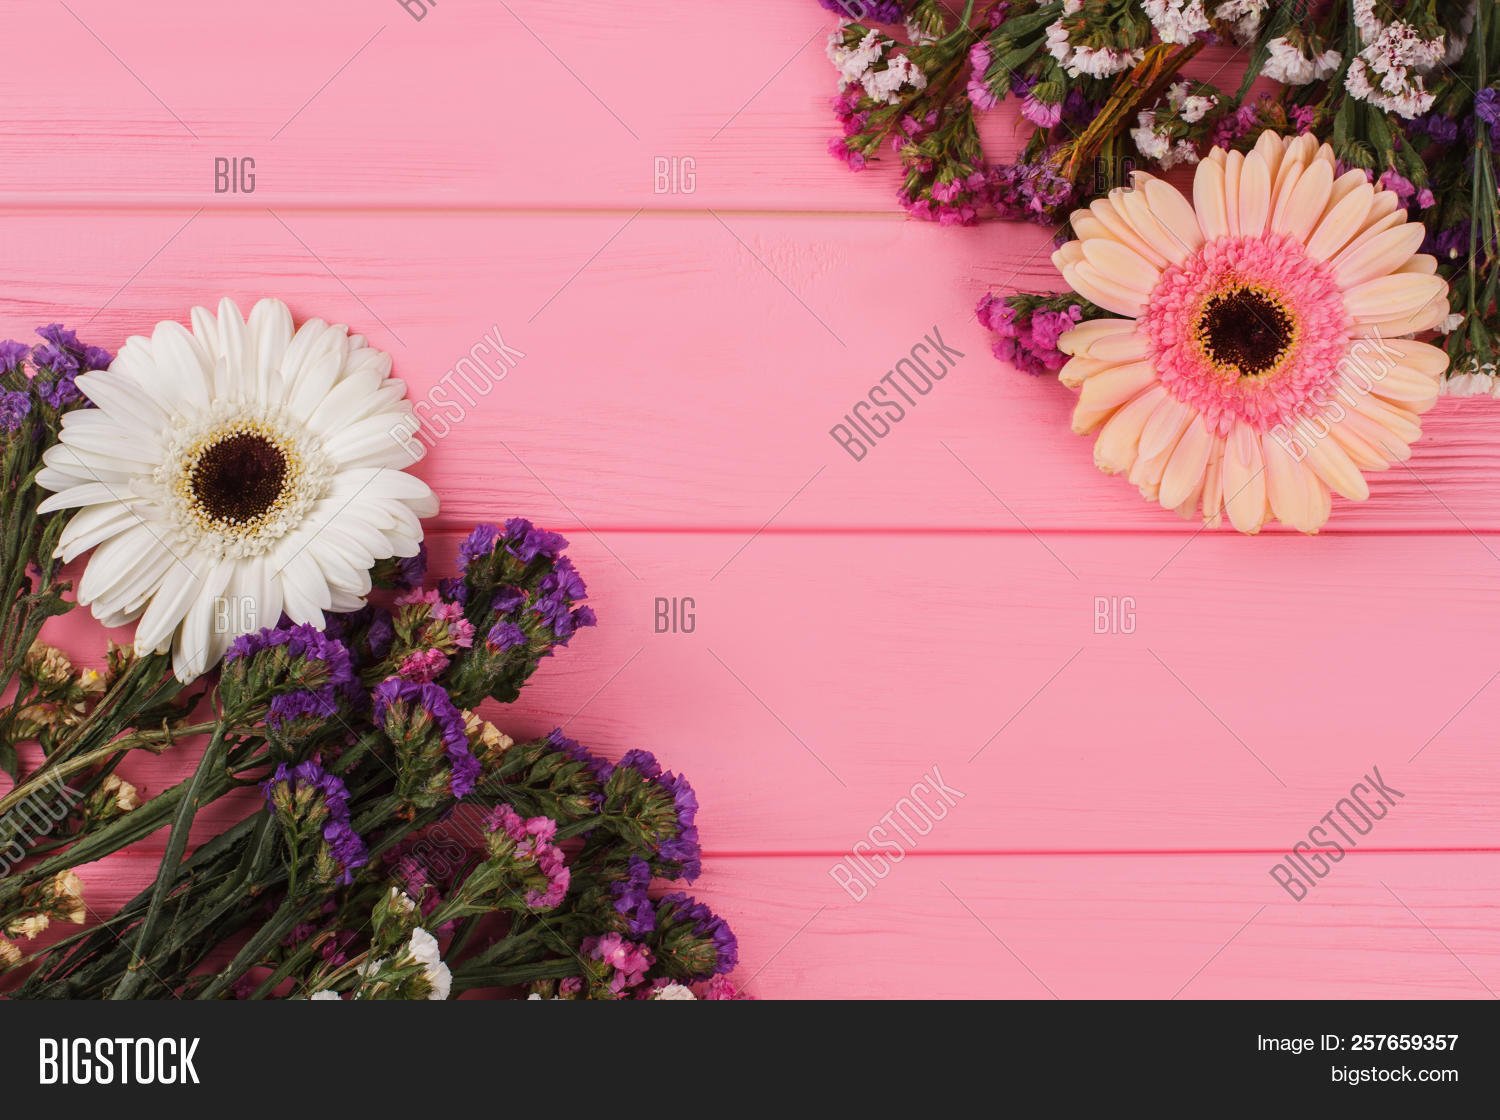 Statice Daisy Flowers Image Photo Free Trial Bigstock